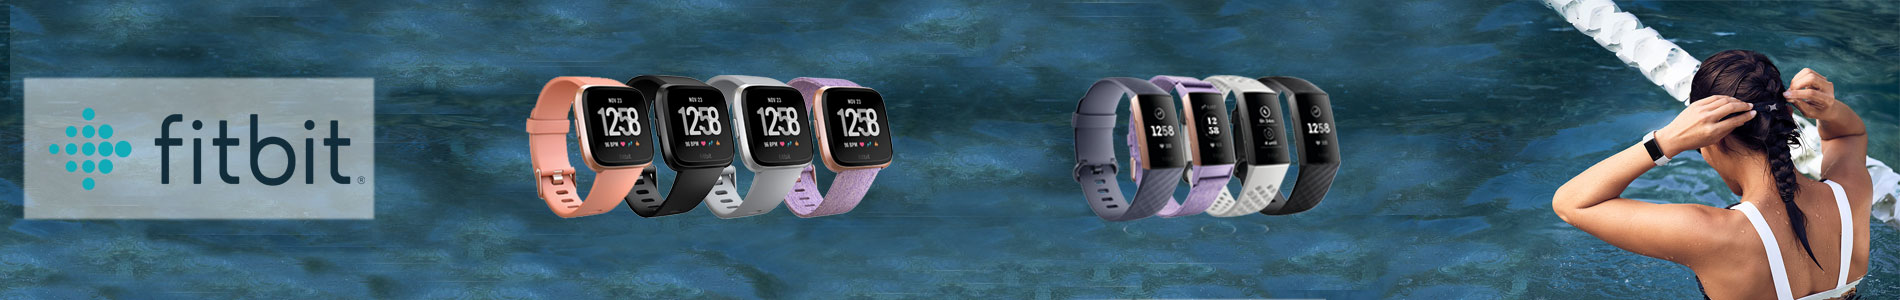 Fitbit-banner-image